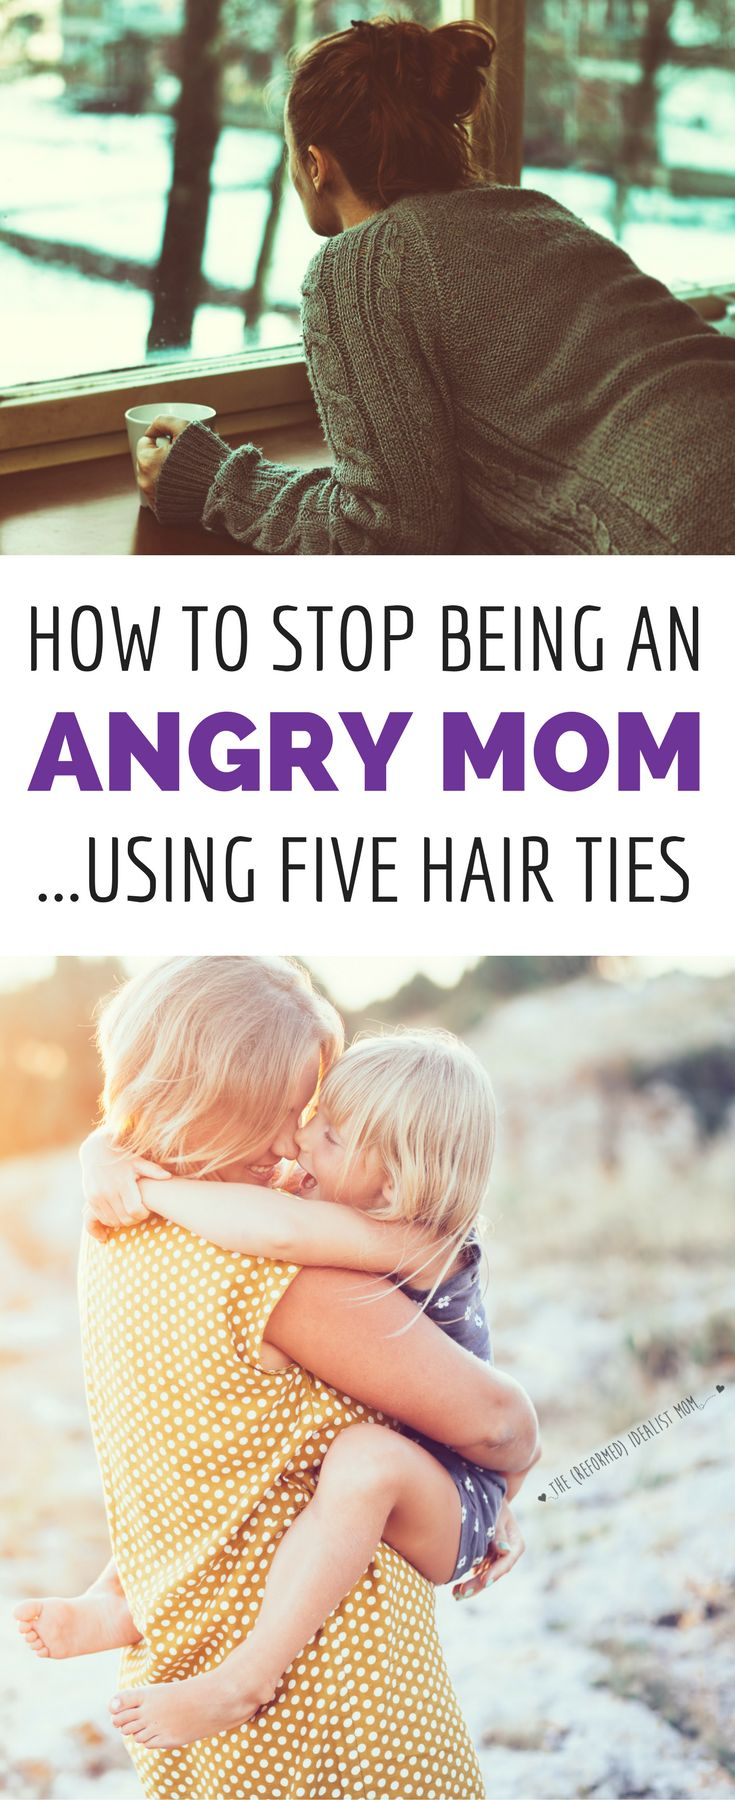 Angry mom? This simple trick using 5 hair ties will make you go from angry mom to happy mom. And the BEST part is how your kids will react! When you're struggling with your temper, this will get you back on track to enjoying motherhood.